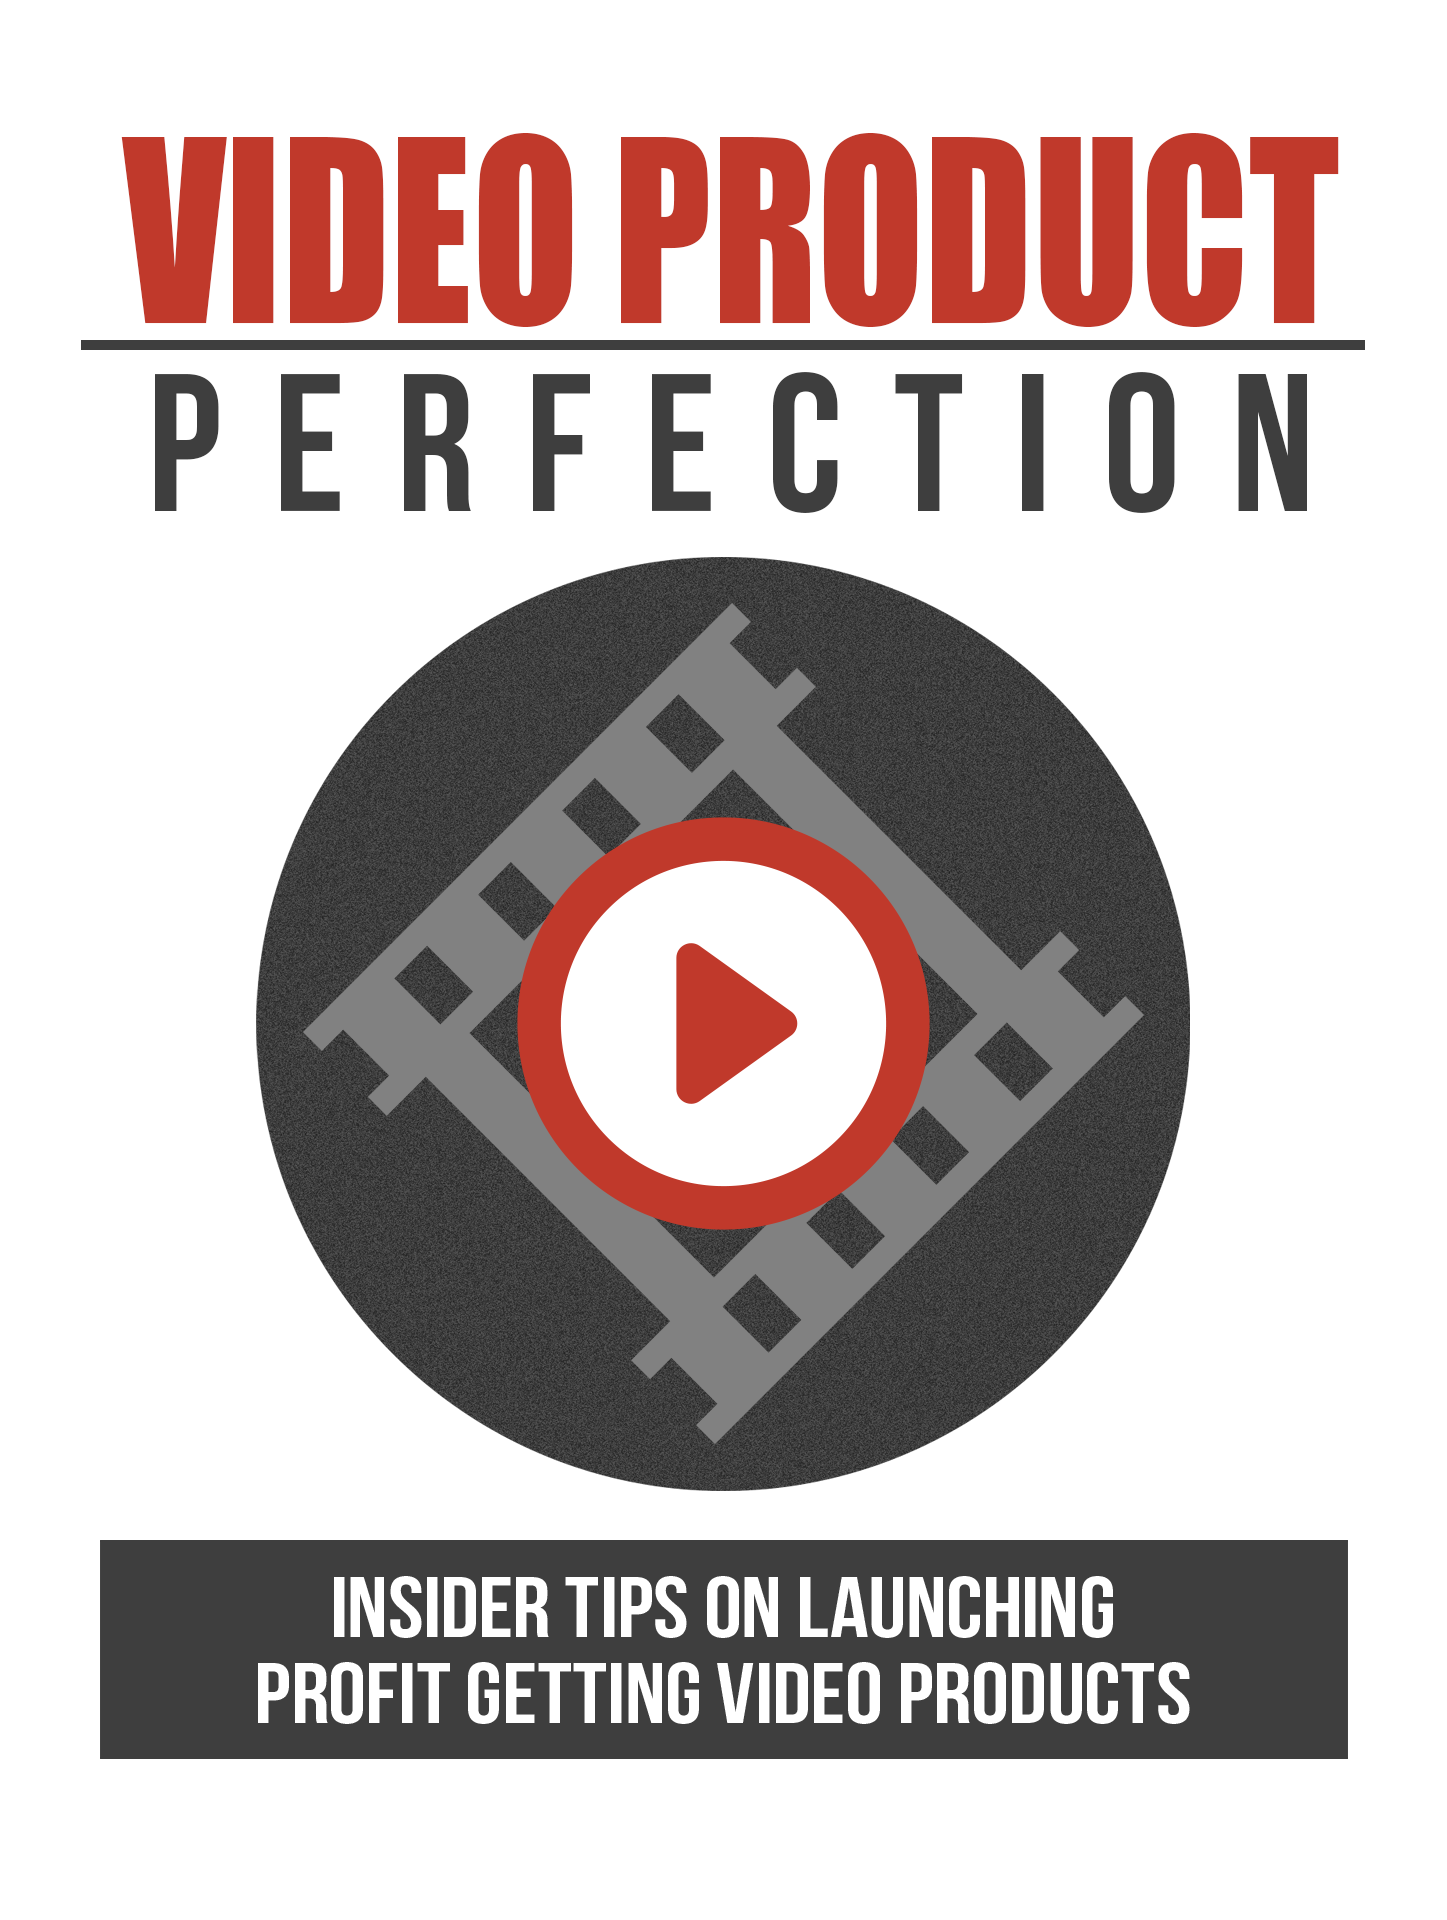 [Image: VideoProductPerfection.png]